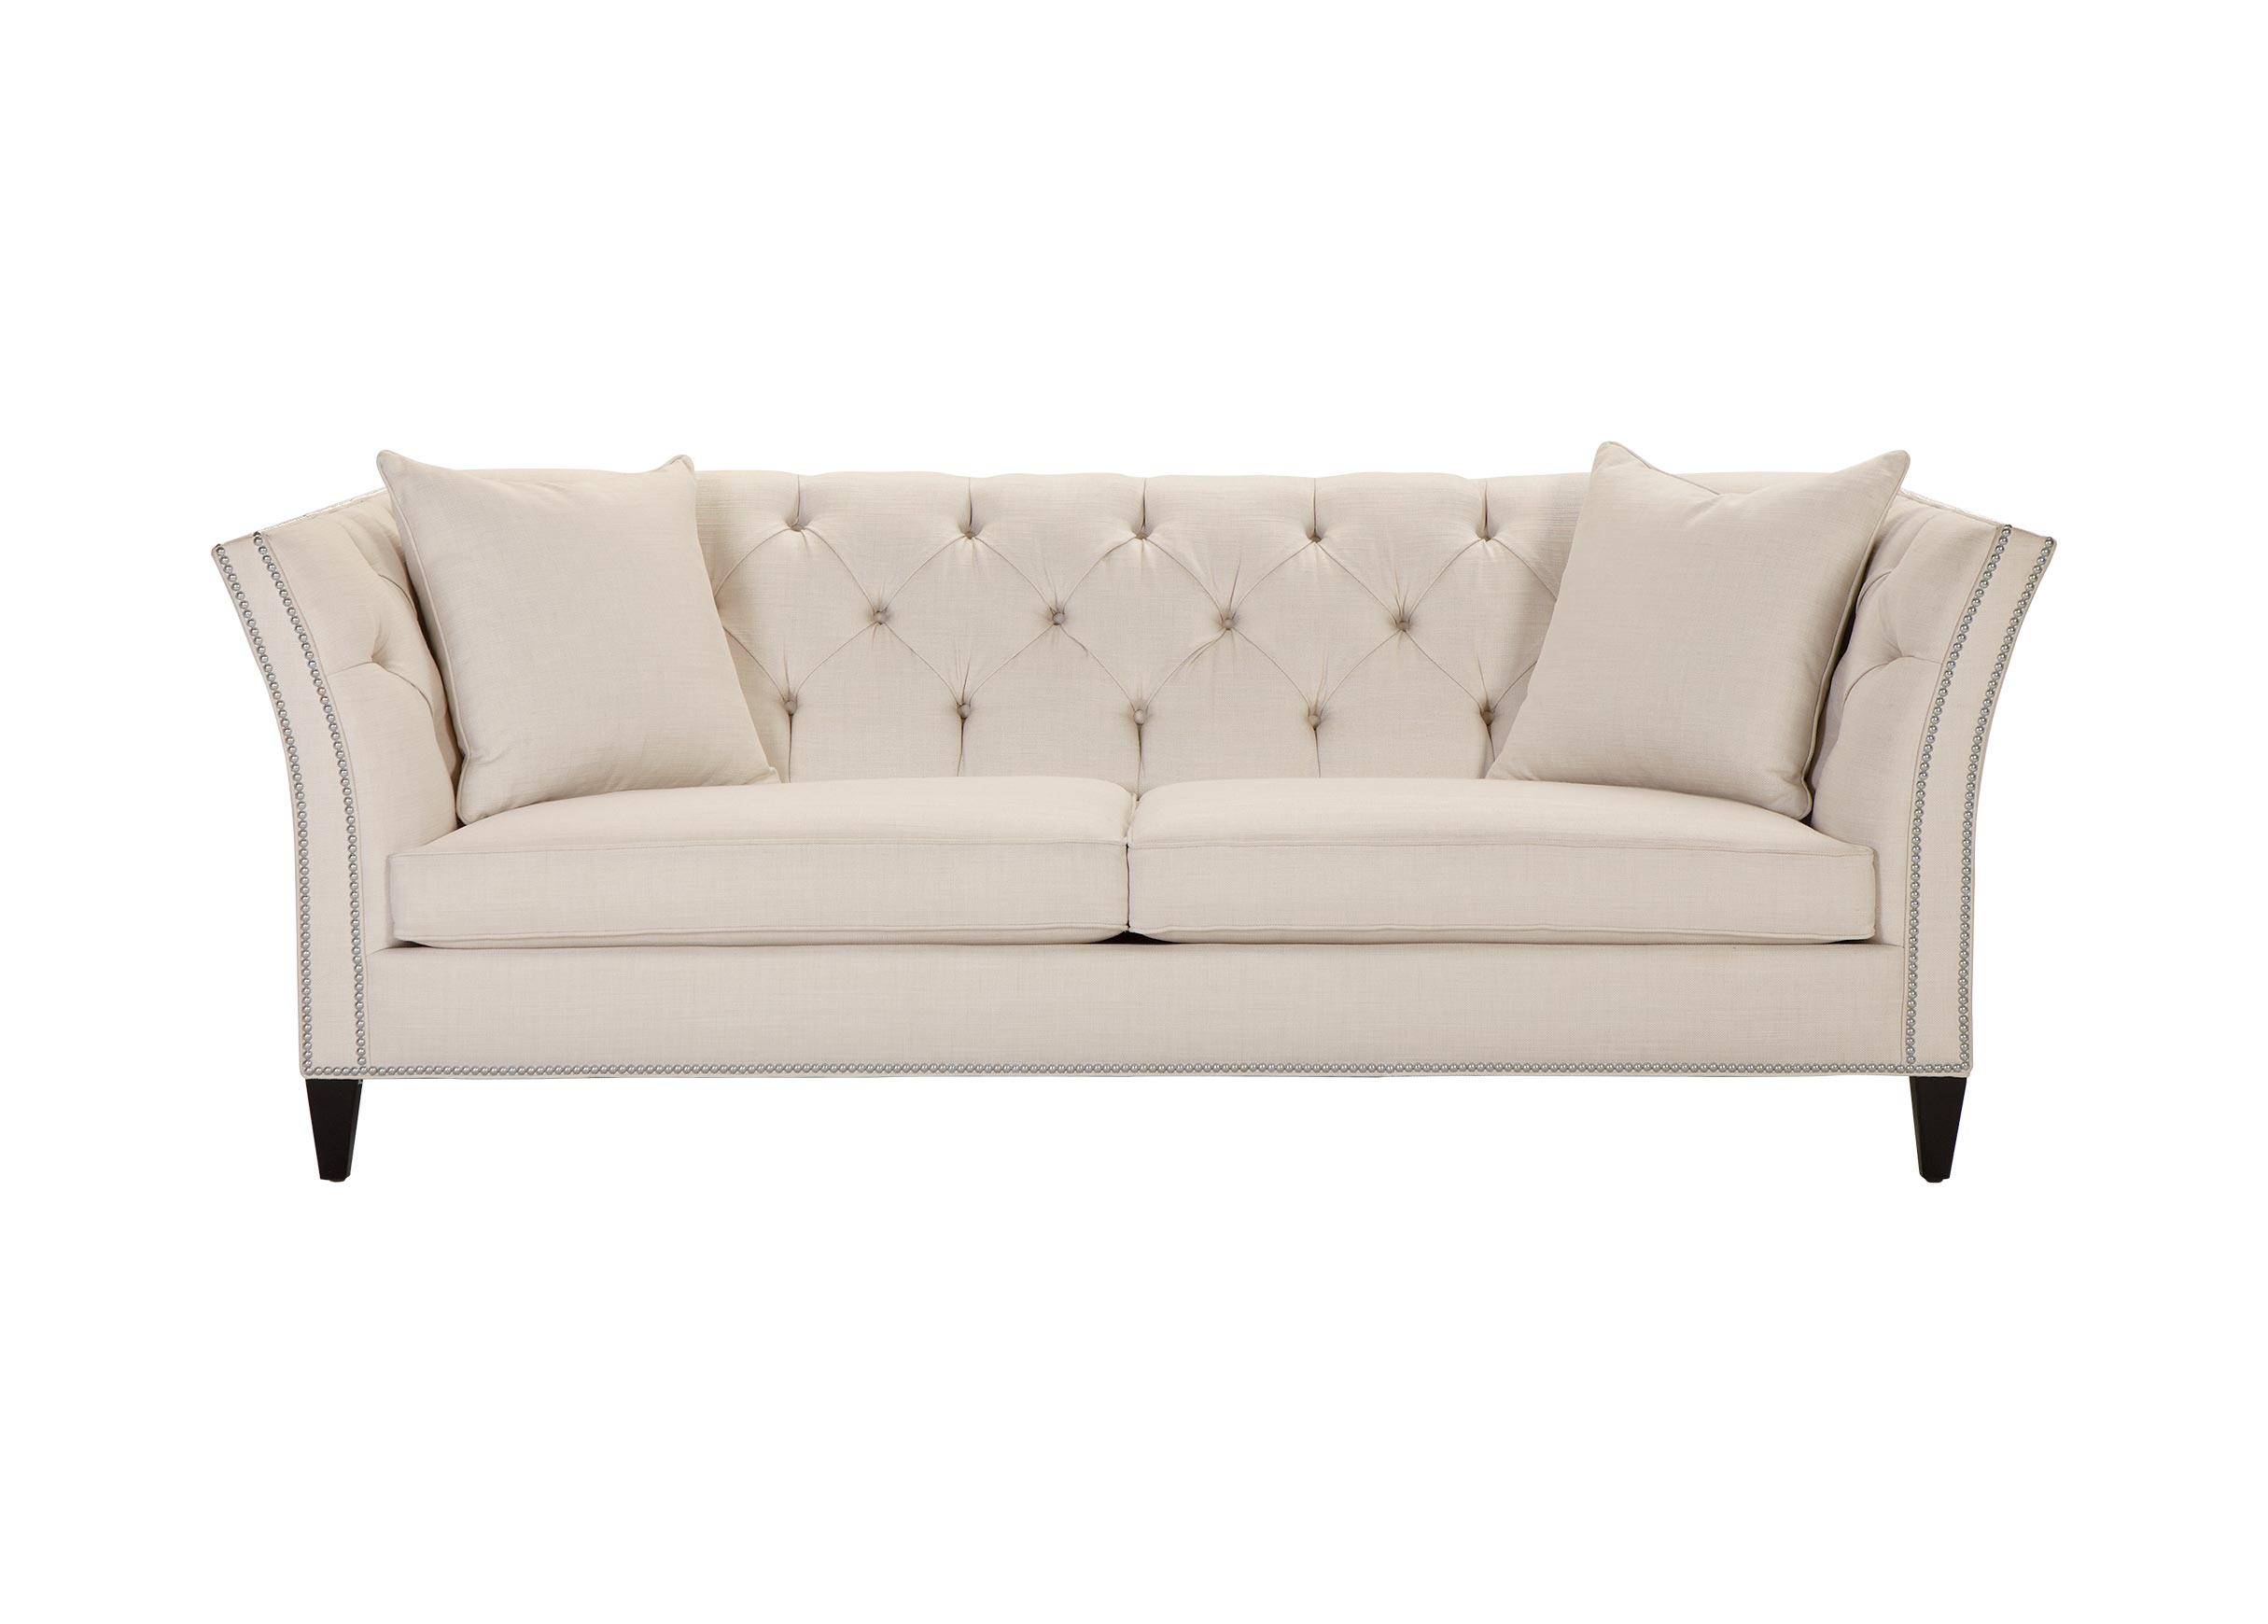 Sofa Shelton Sofa Sofas And Loveseats Ethan Allen